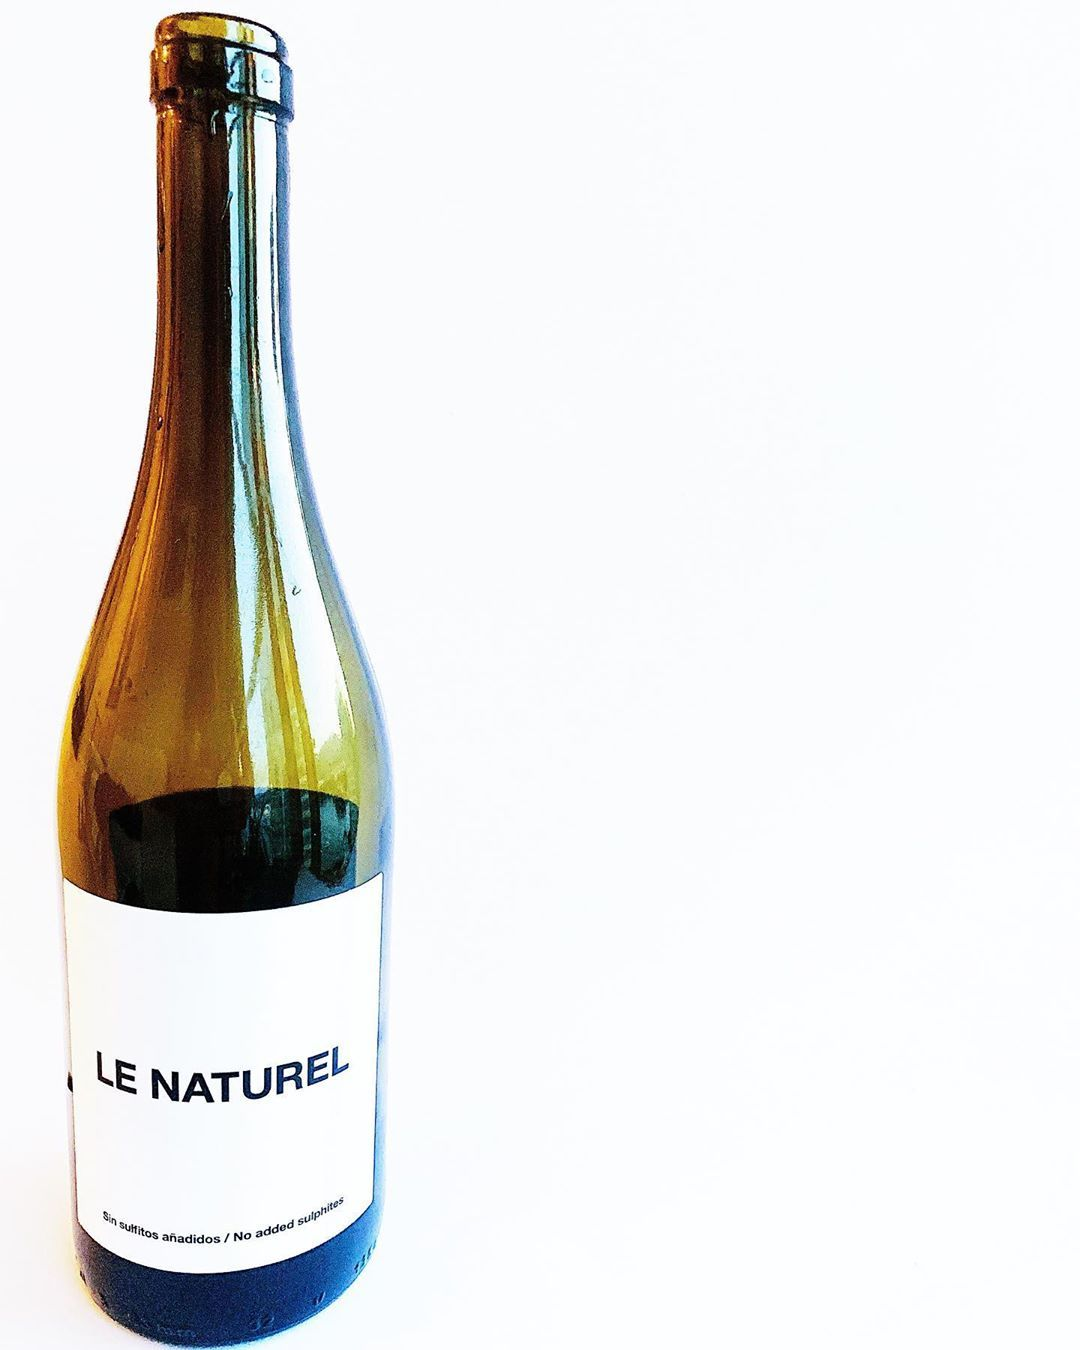 Enjoying a delicious glass of this Le Naturel tonight as we pack for a sailing trip this weekend. The wine is Organic & Biodynamic with minimal intervention . . . . .